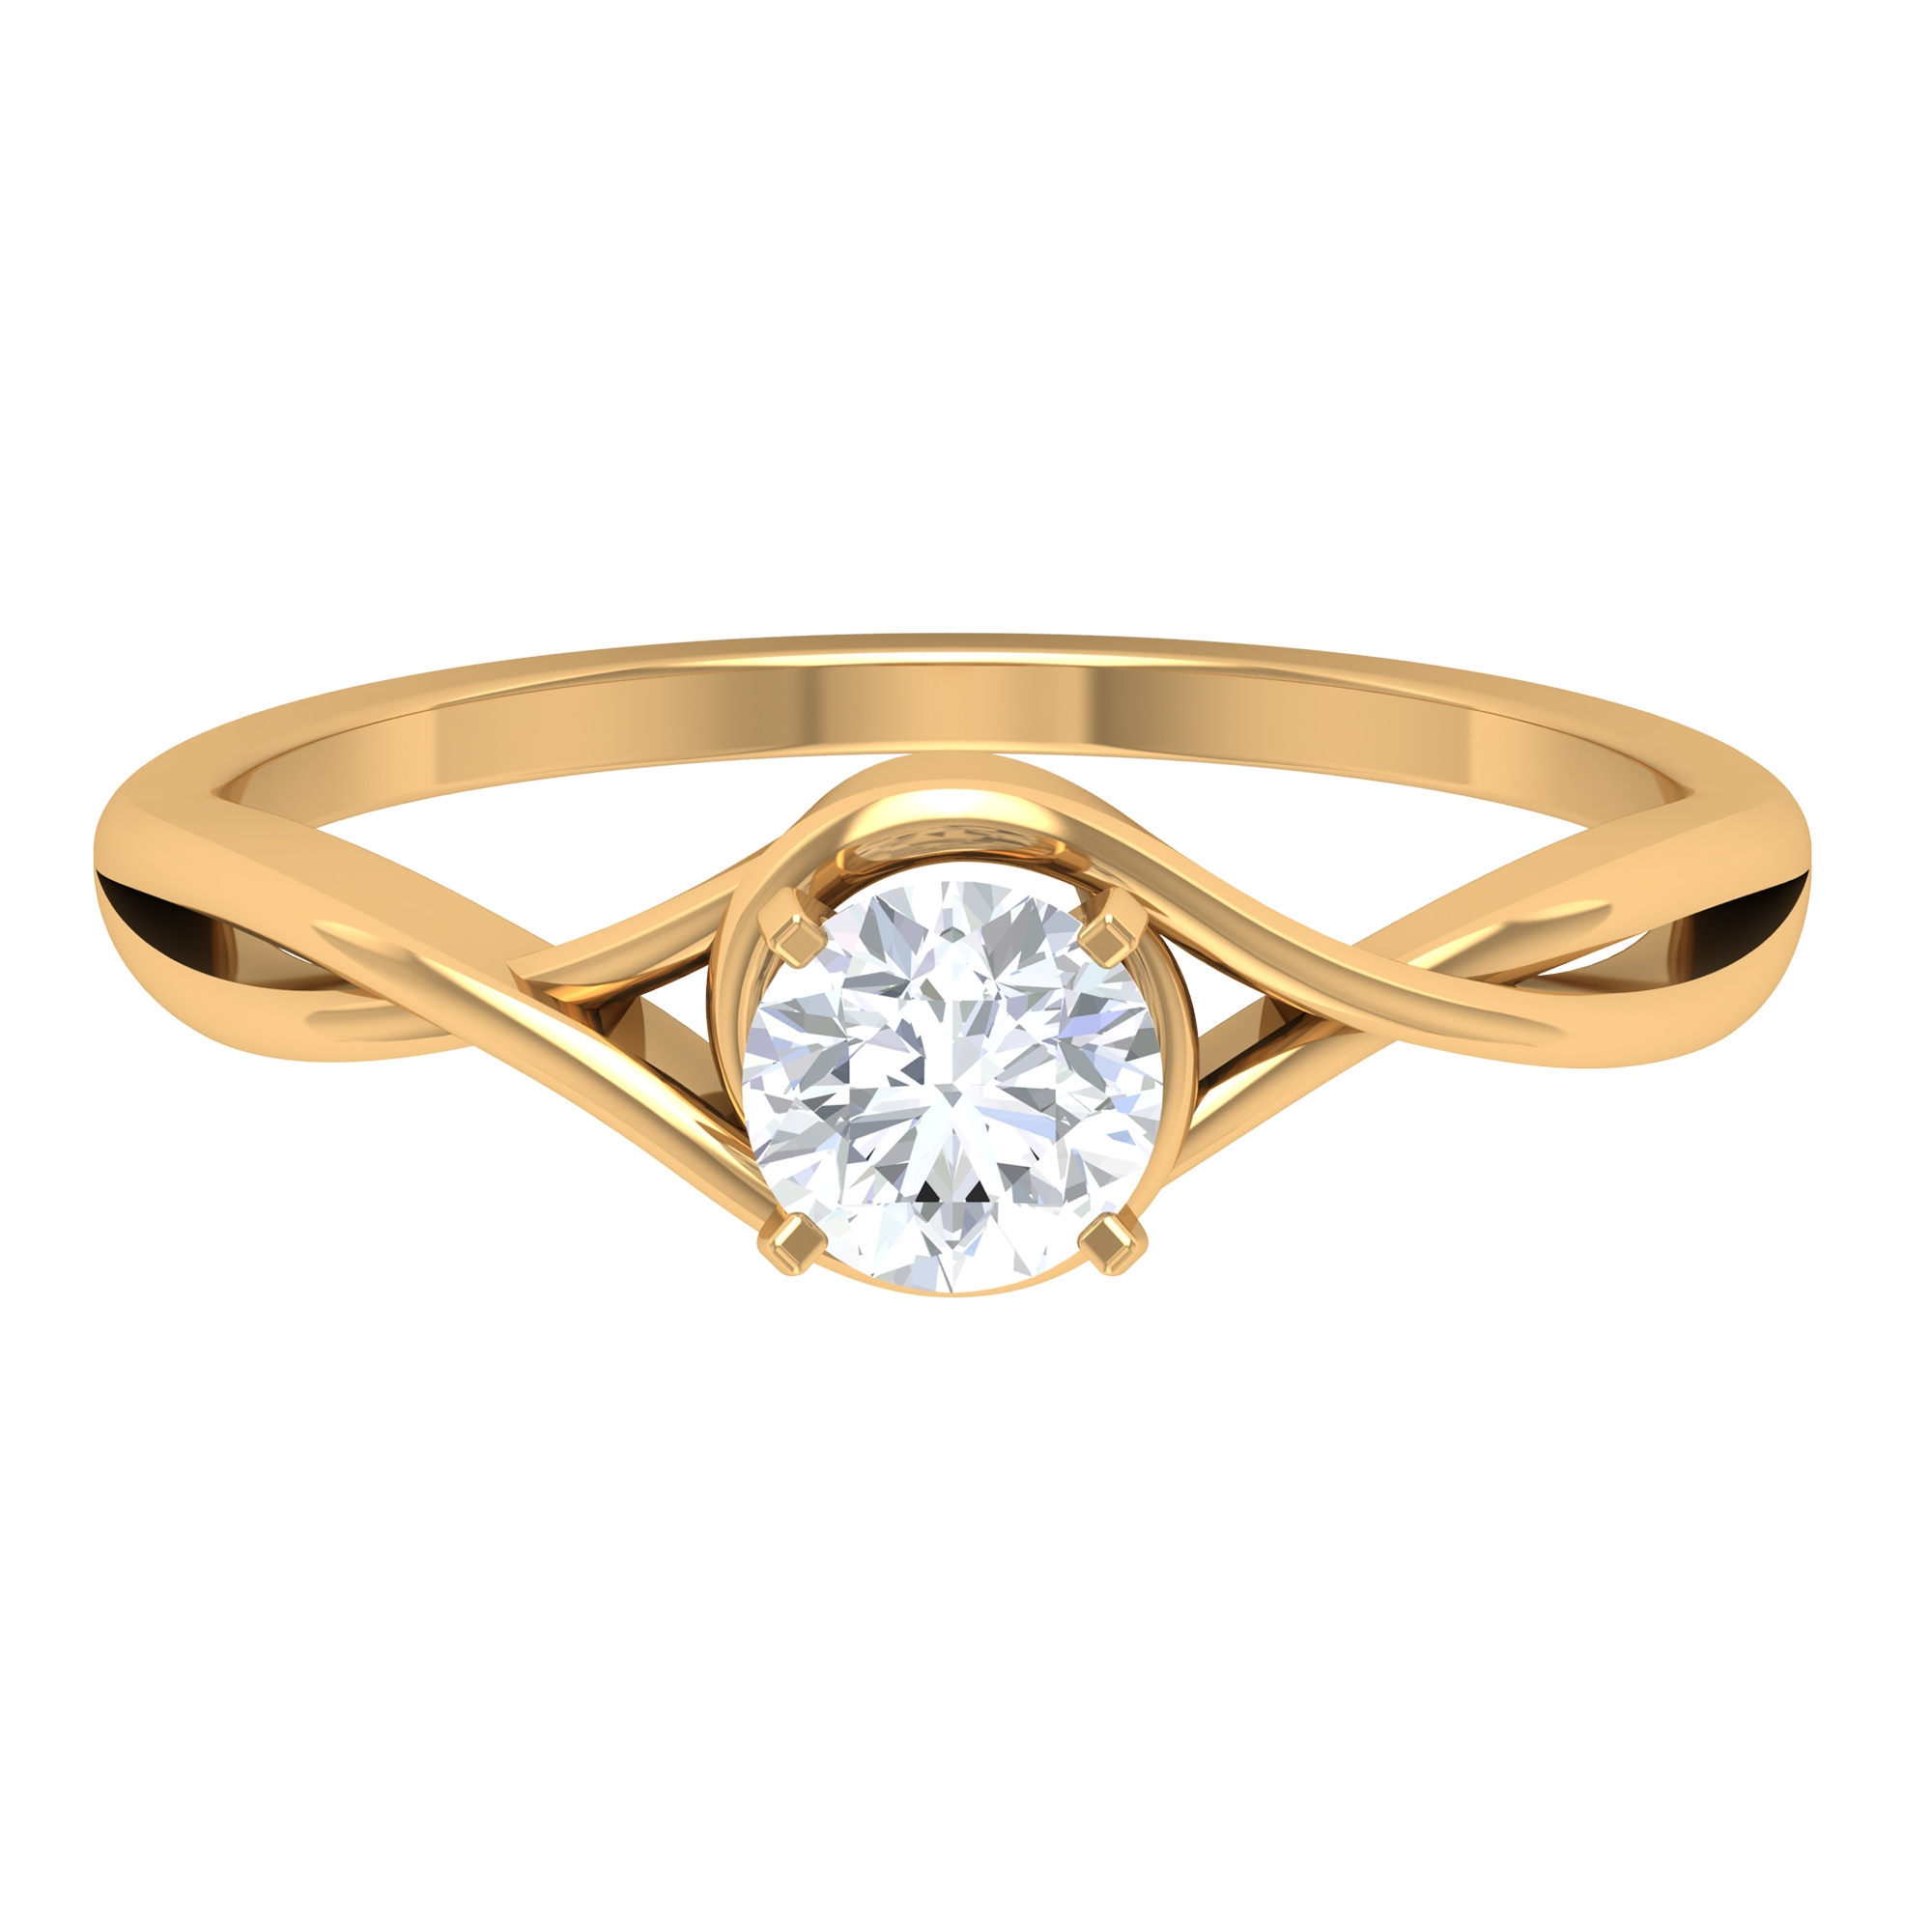 5 MM Round Cut Diamond Solitaire Ring in Square Prong Setting with Crossover Shank